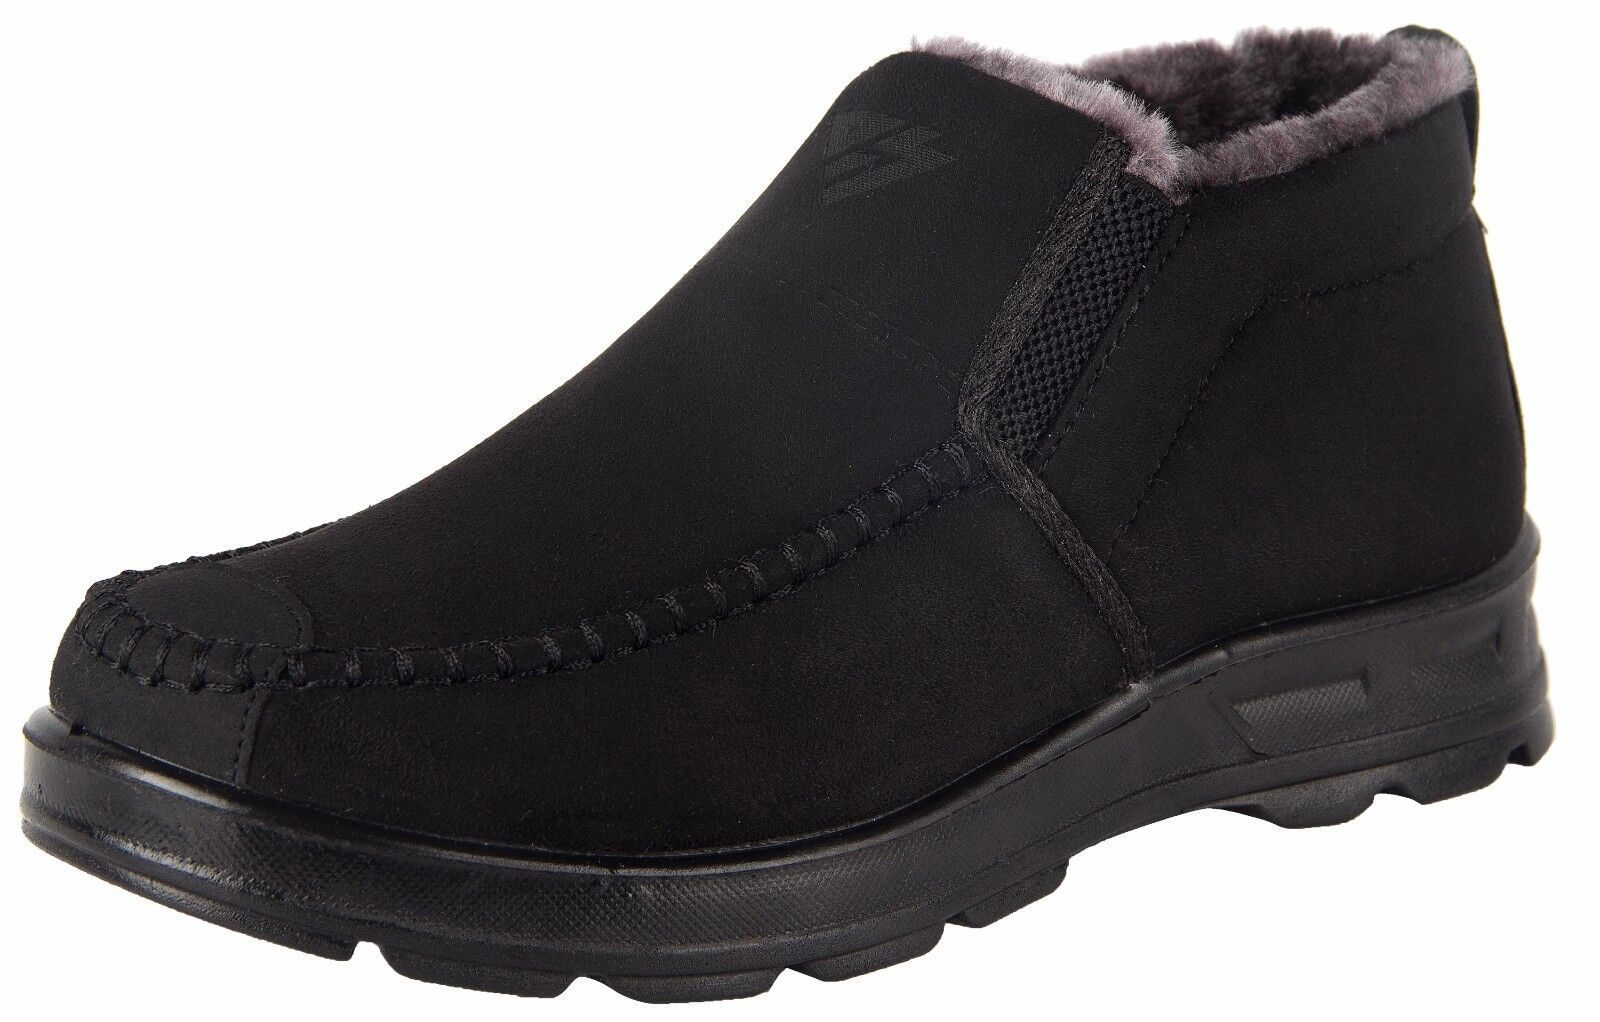 iLoveSIA Men's Warm Fur Lining Winter Outdoor Casual Shoes S